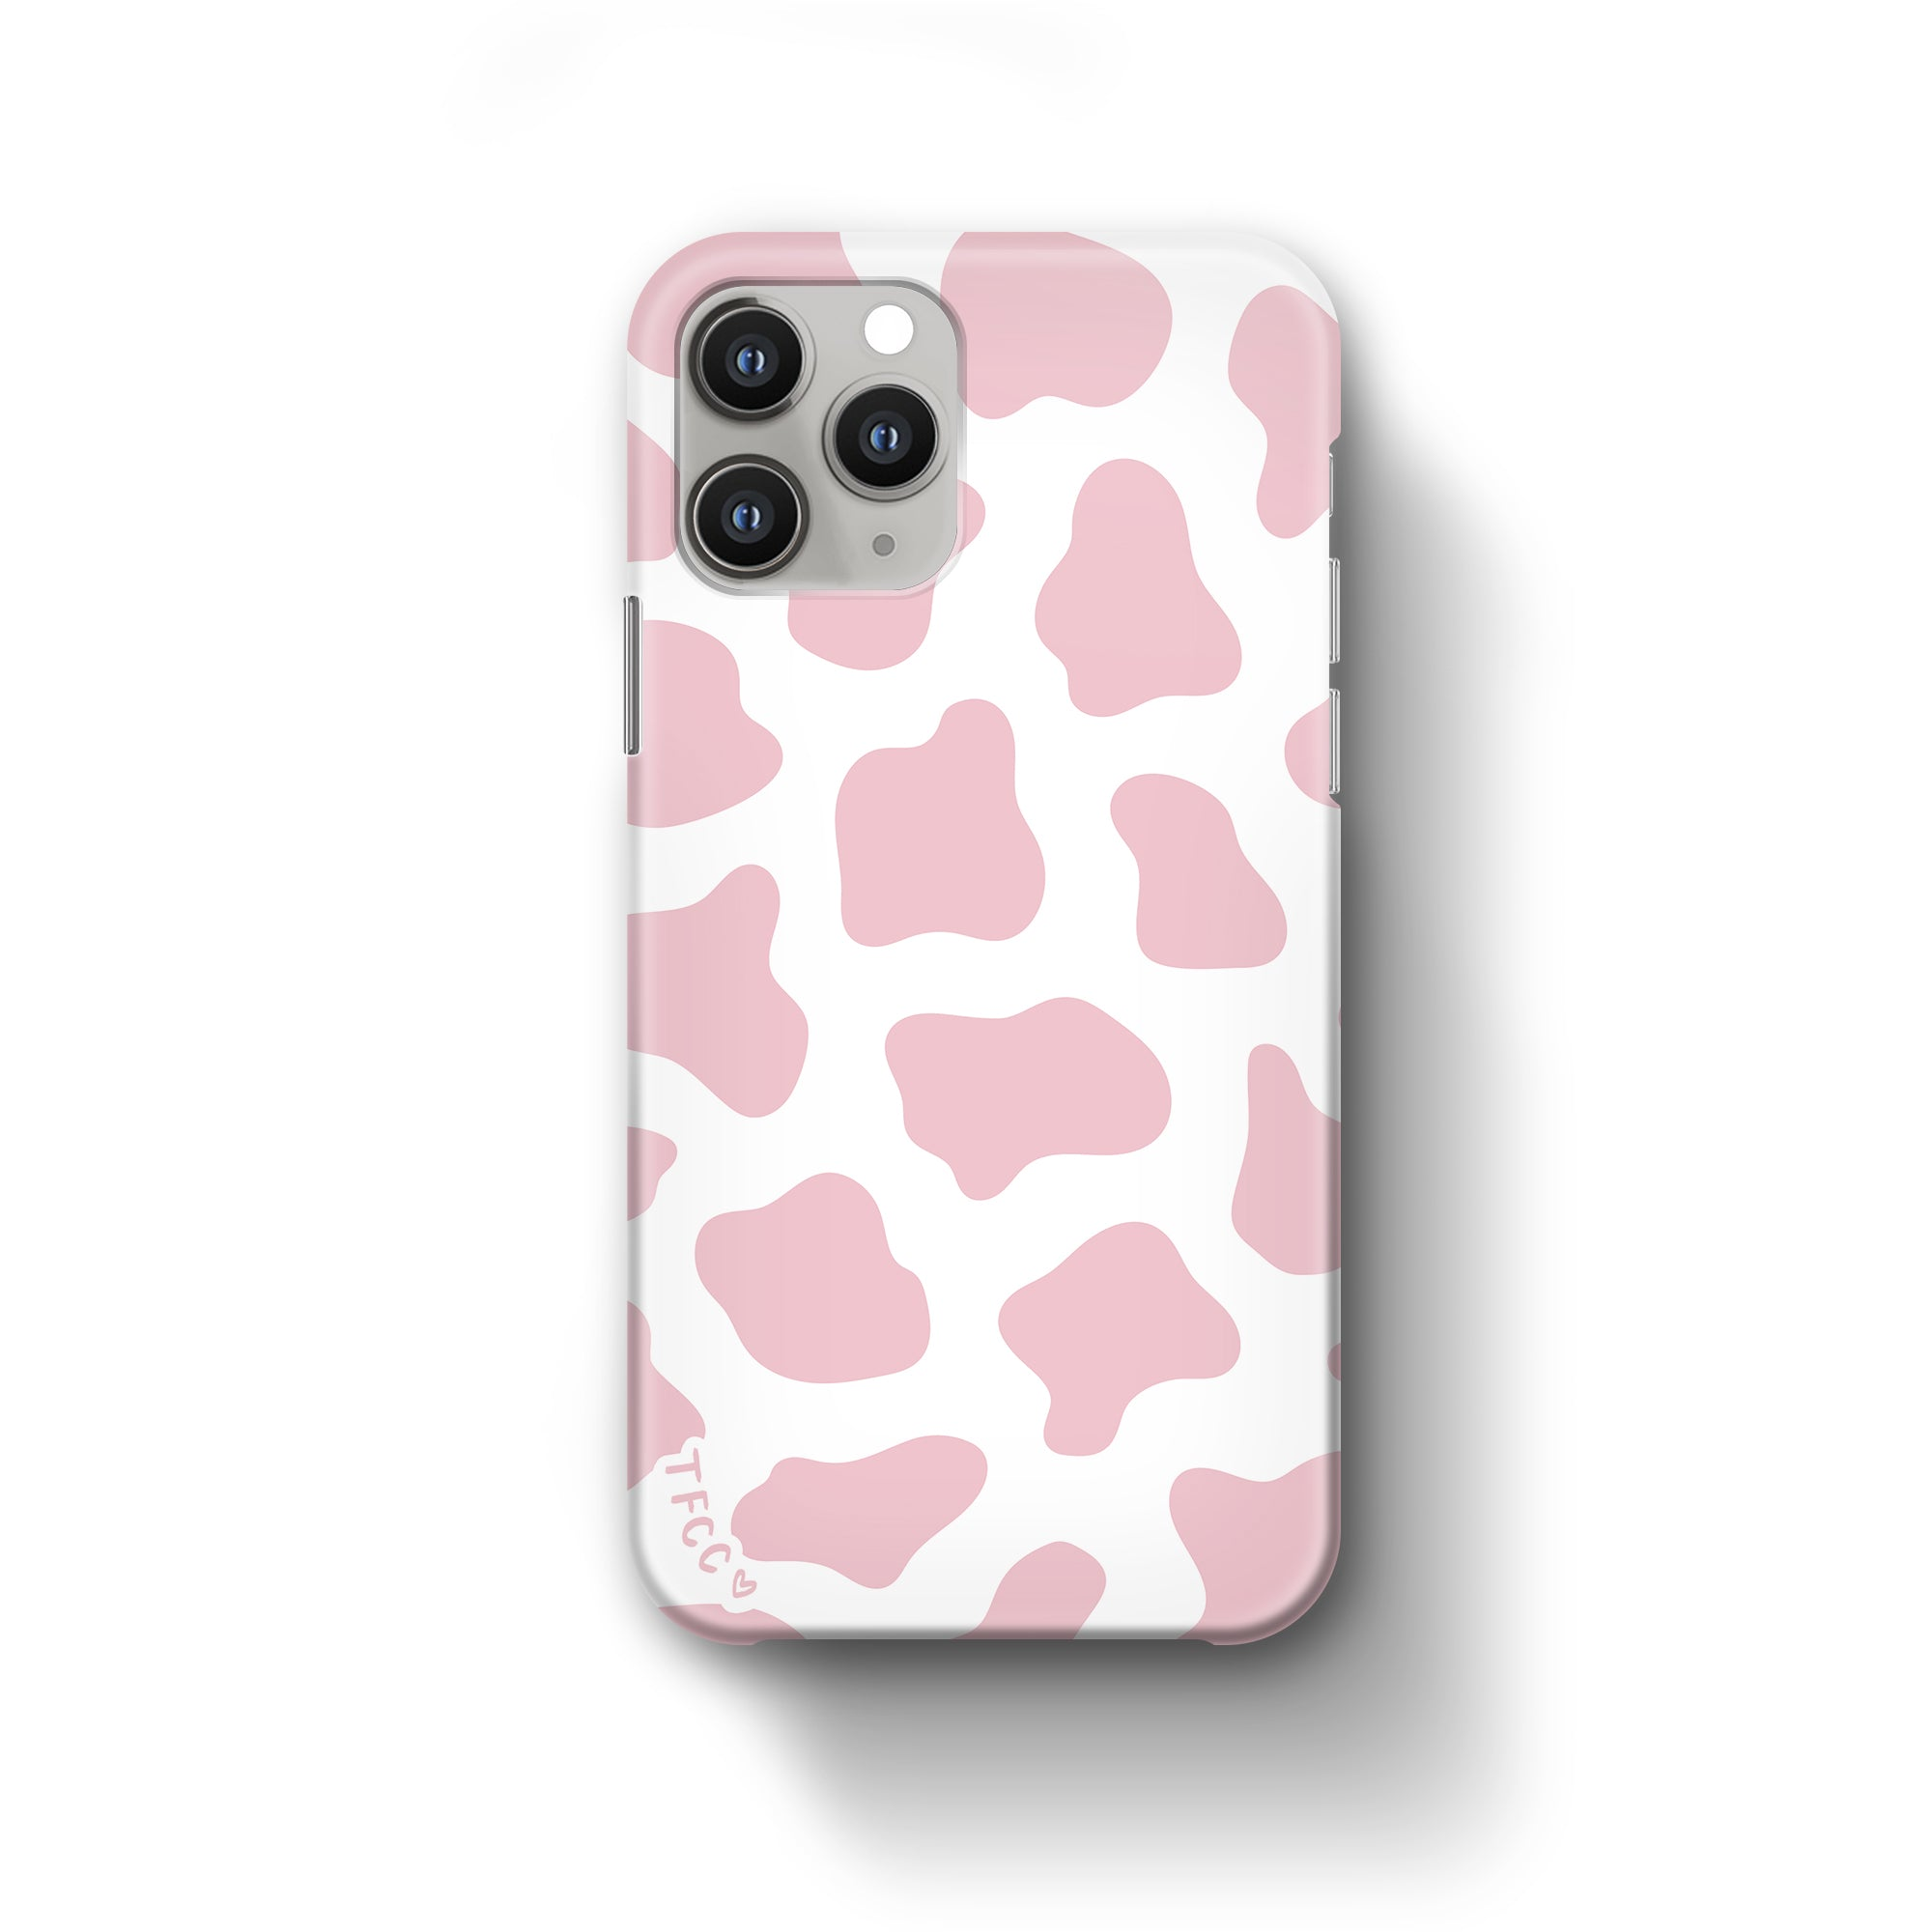 COW PRINT PINK CASE - thefonecasecompany